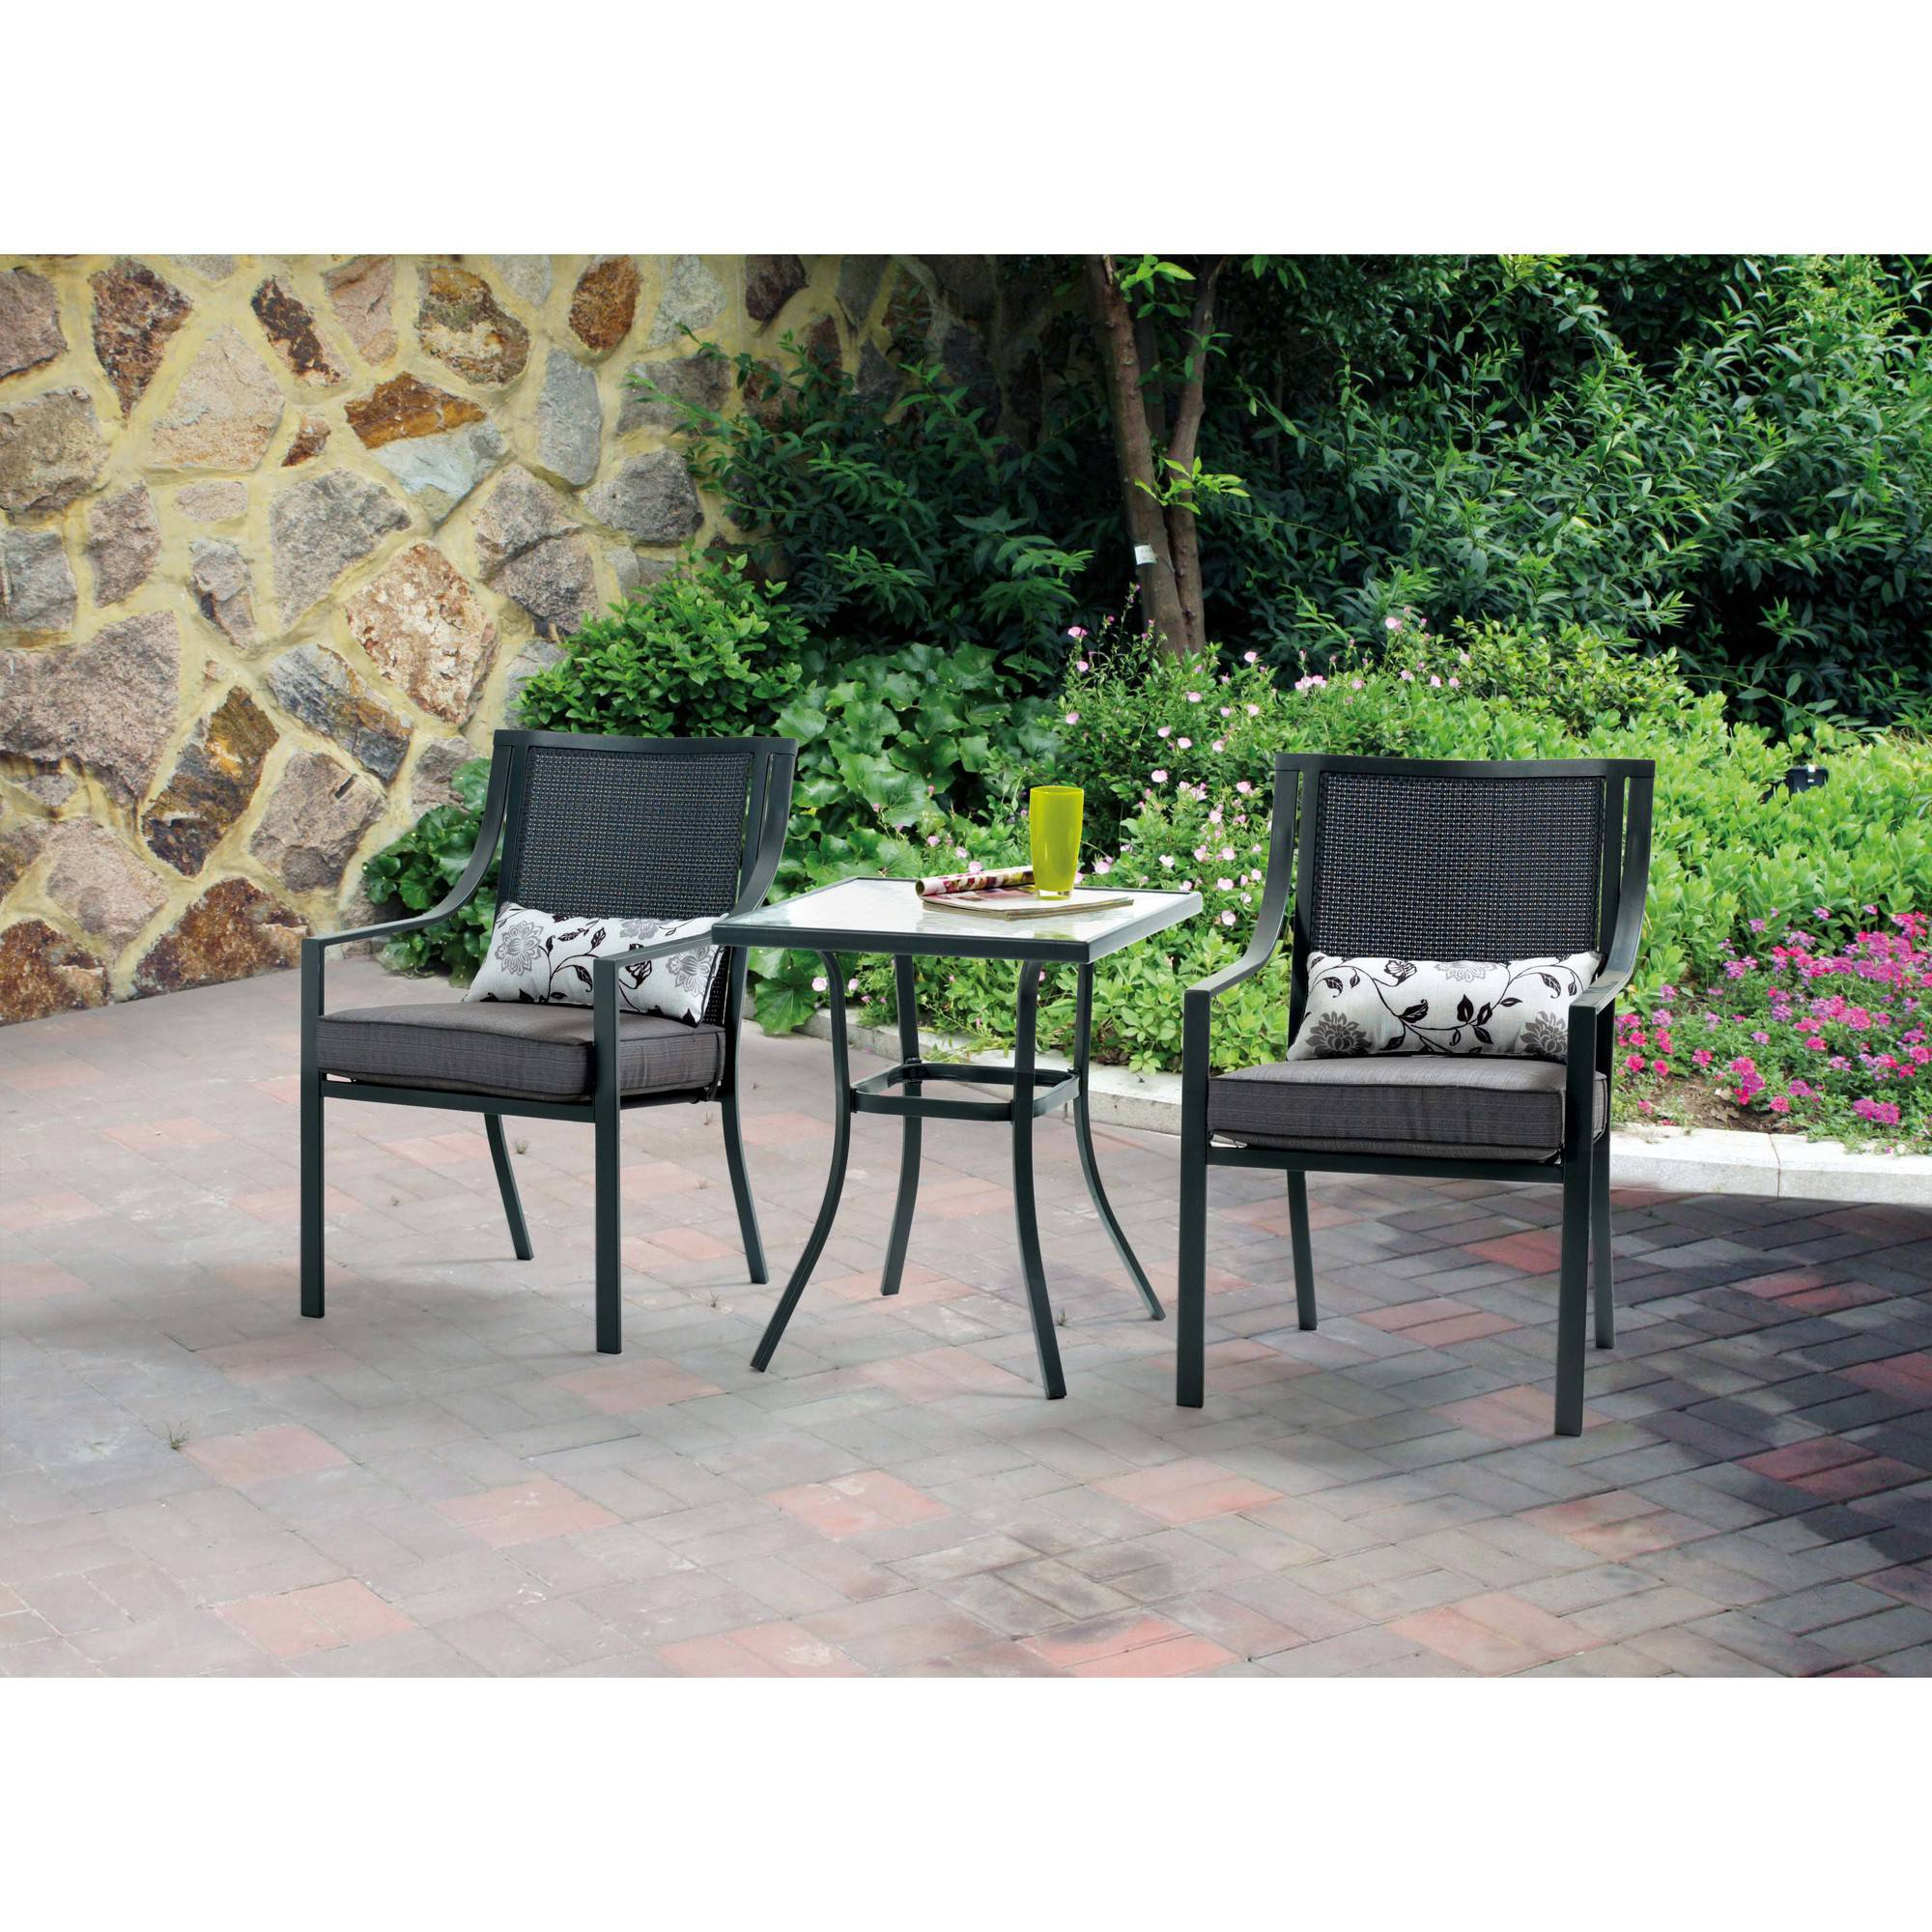 Mainstays Alexandra Square 3-Piece Outdoor Bistro Set, Seats 2 ...